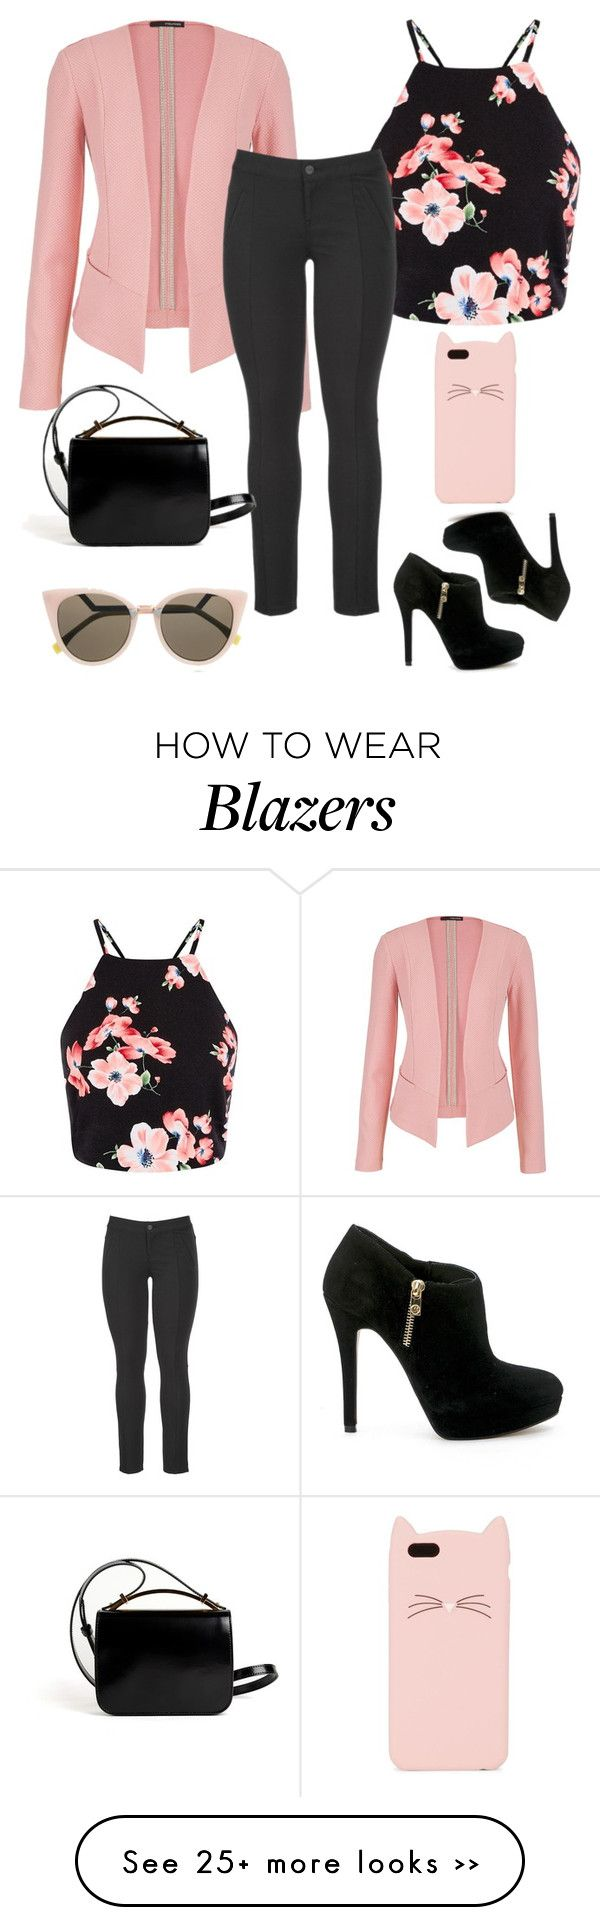 """Peachy Black"" by chanlee-luv on Polyvore featuring maurices, MICHAEL Michael Kors, Kate Spade, Fendi and Givenchy"